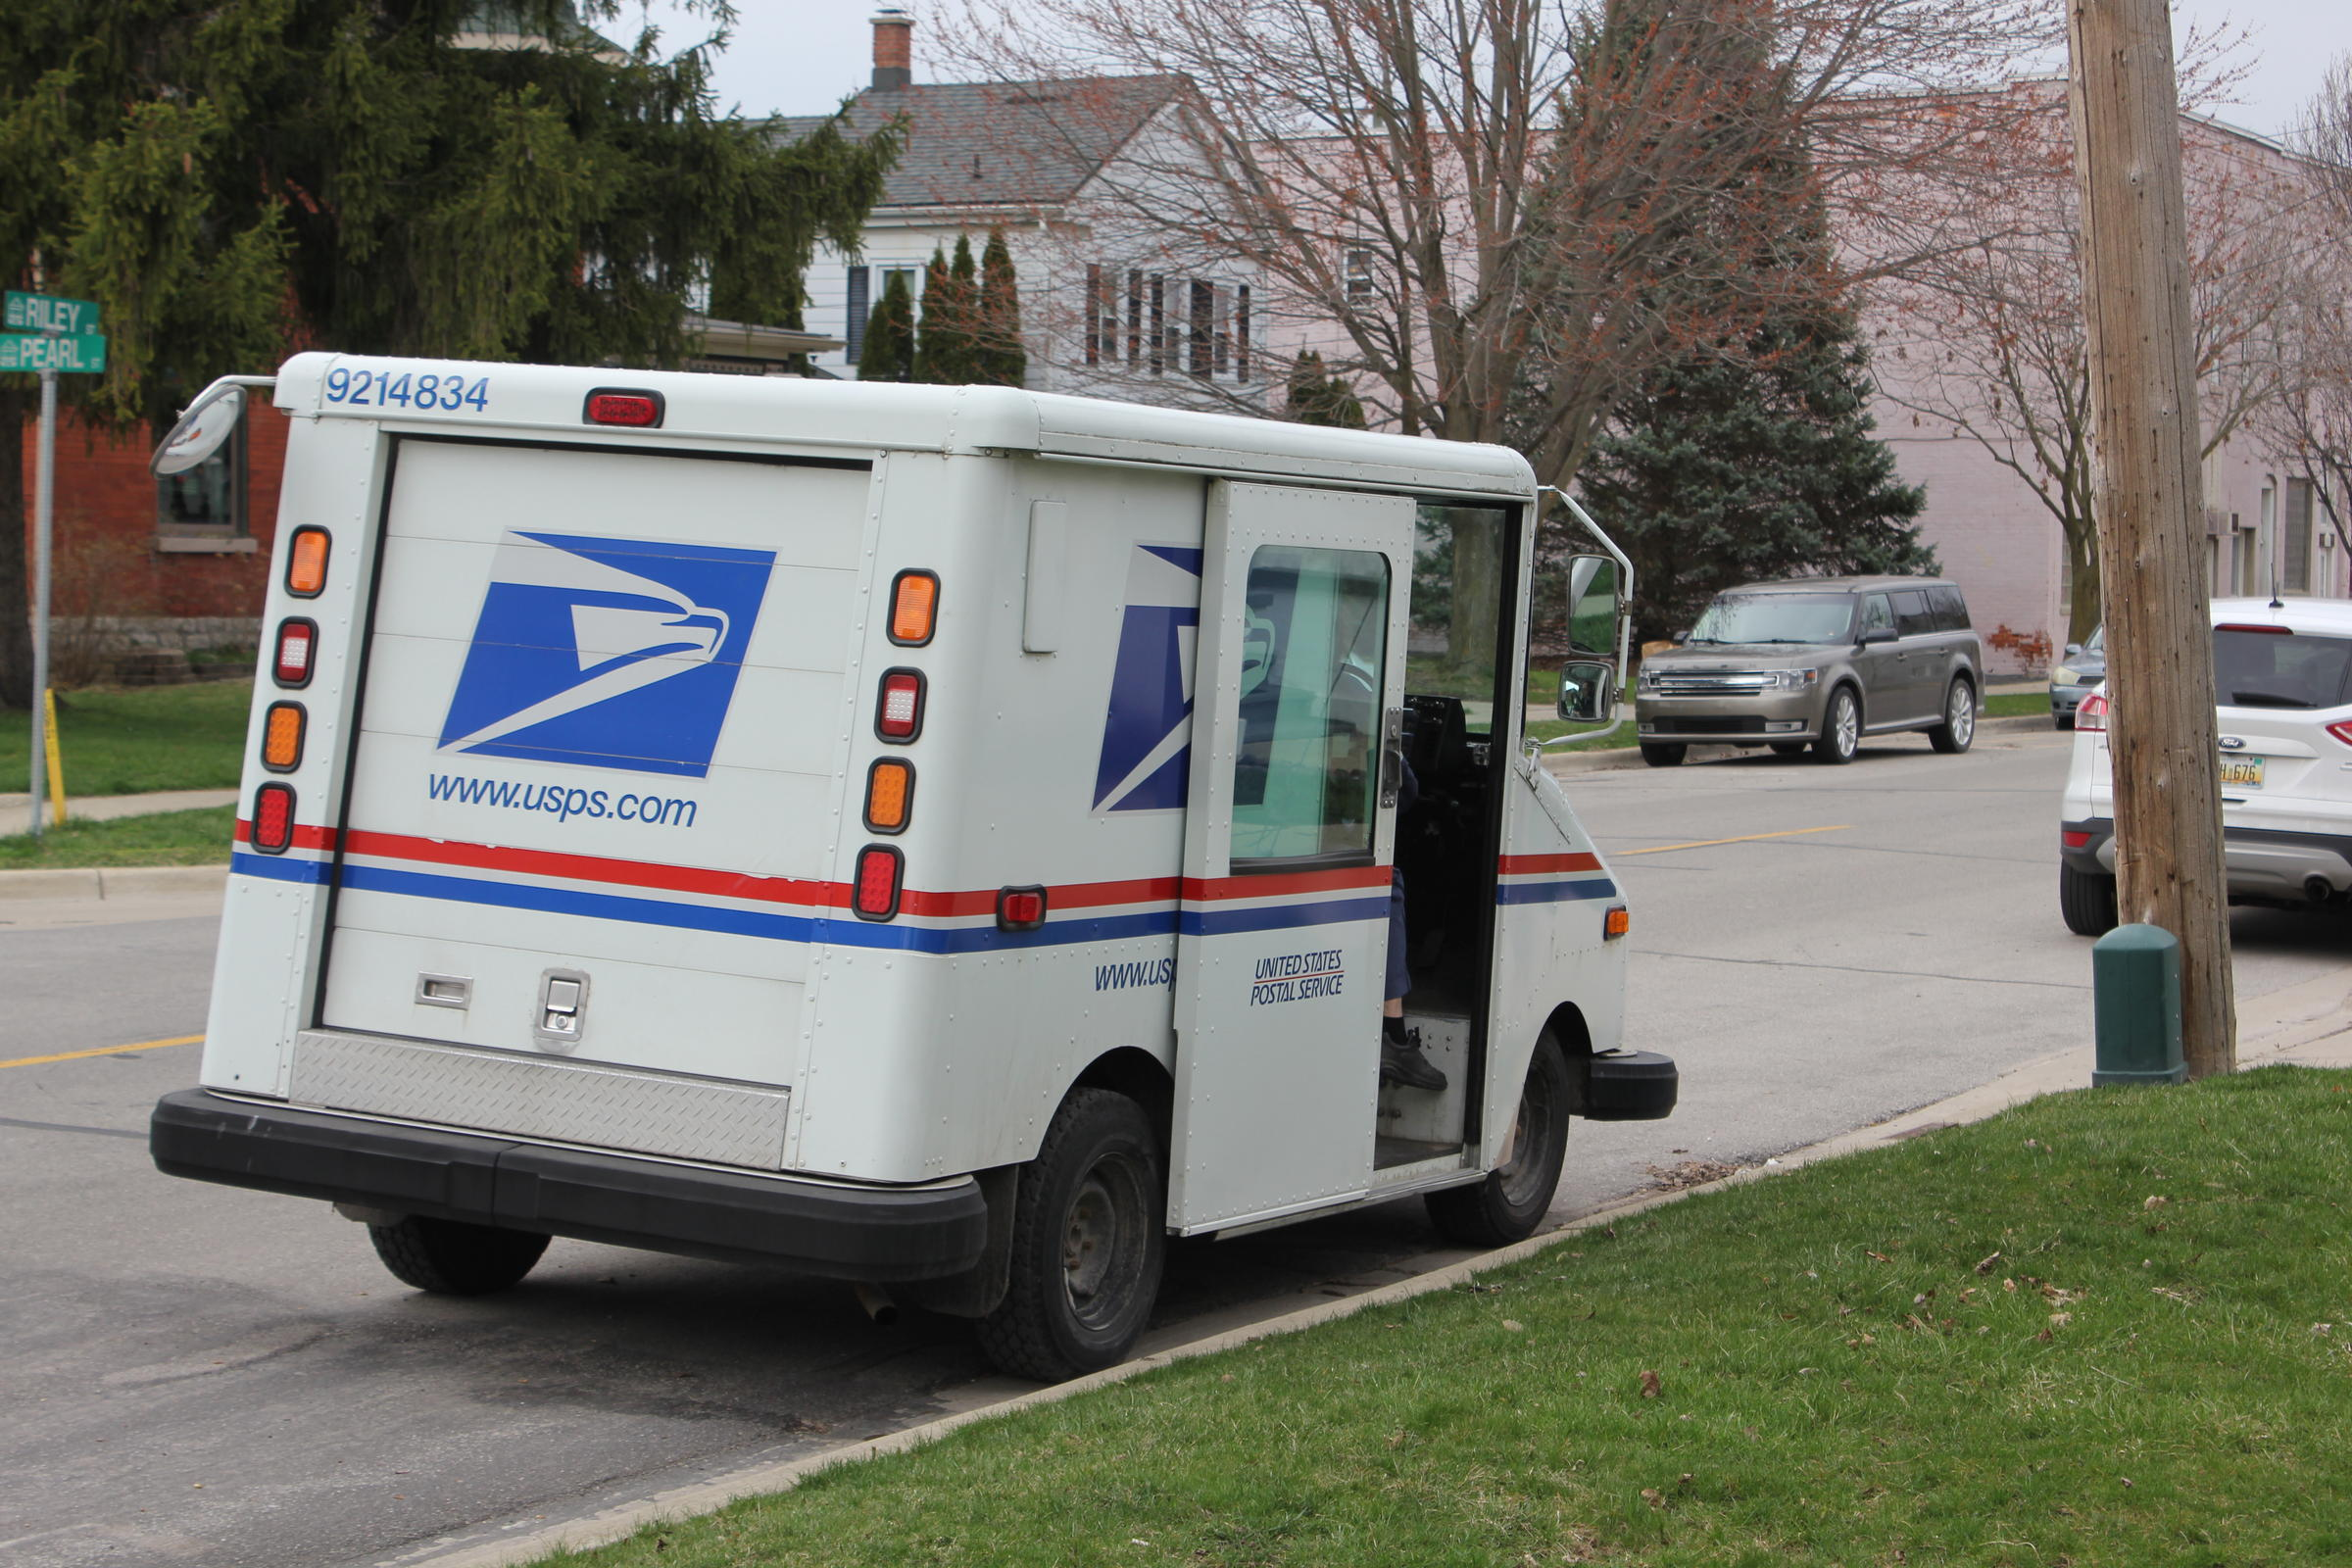 USA election 2020: Postal service warns of mail ballot delays